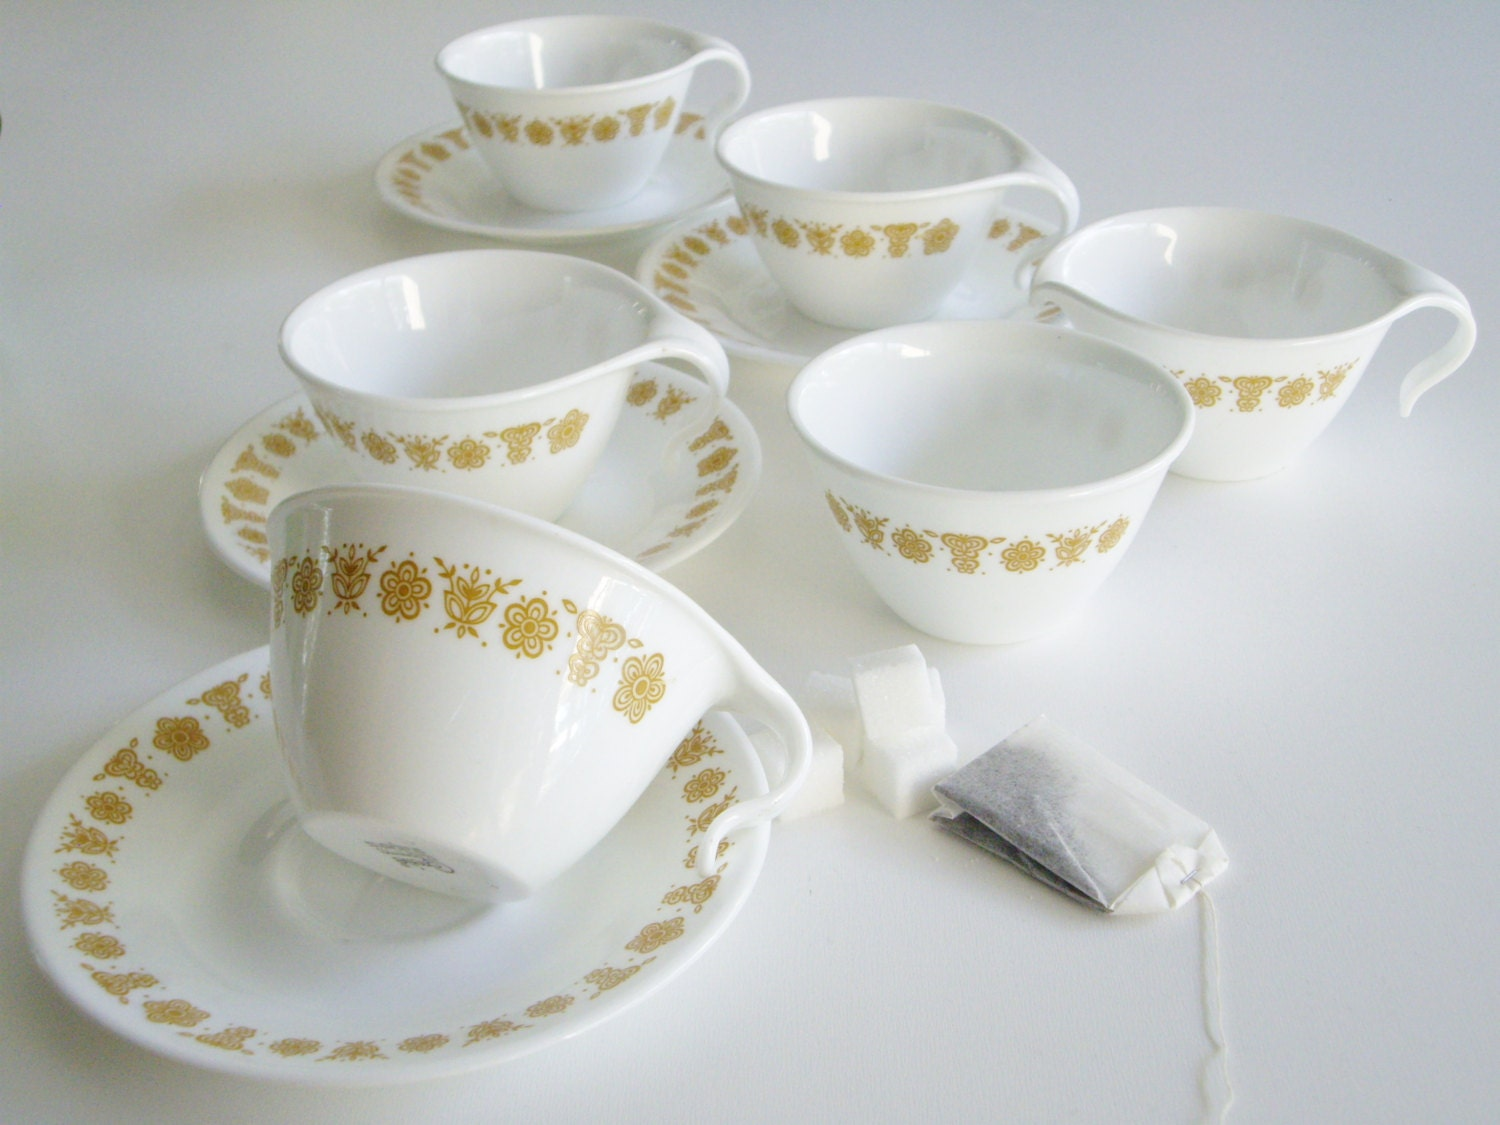 Vintage Corelle Dish Set 4 Cups And Saucers With Cream And